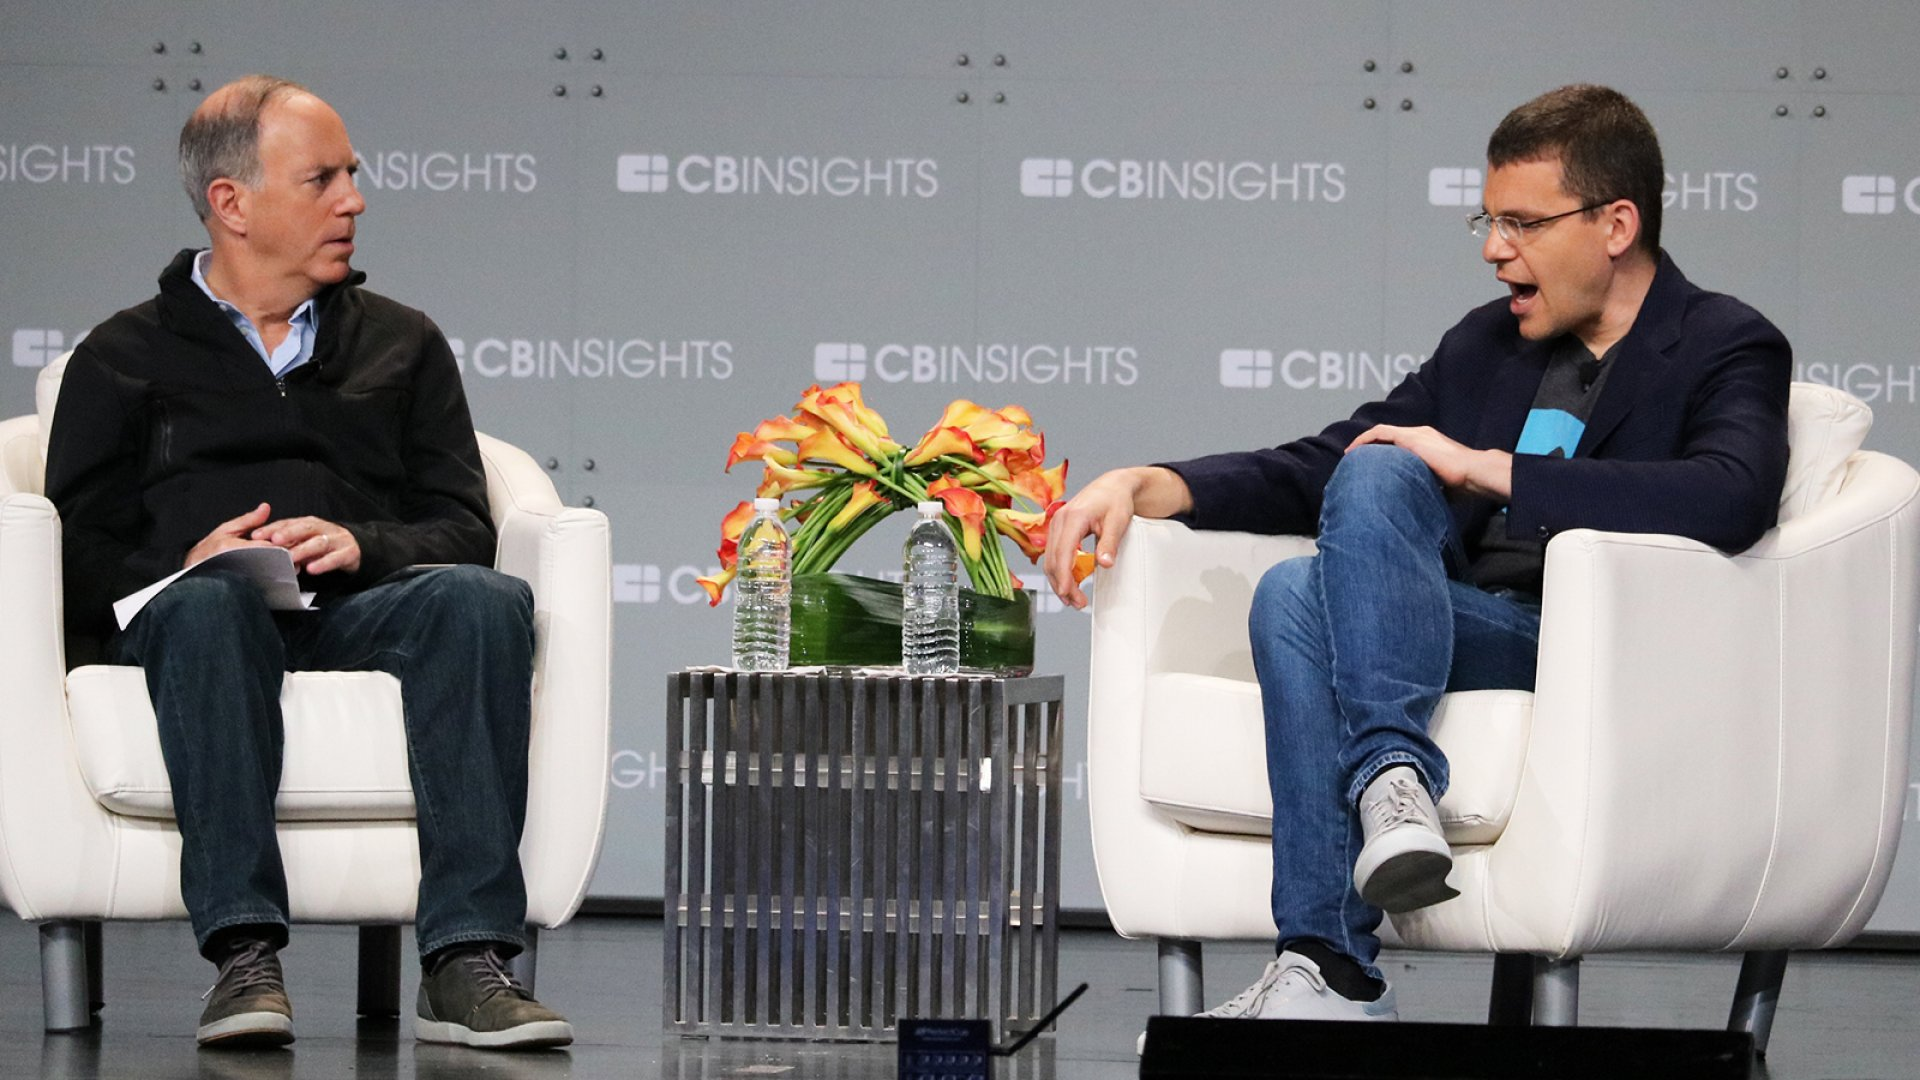 Max Levchin (right) on stage on June 20, 2018 at the Future of Fintech conference with Andy Serwer (left) the editor-in-chief of Yahoo Finance